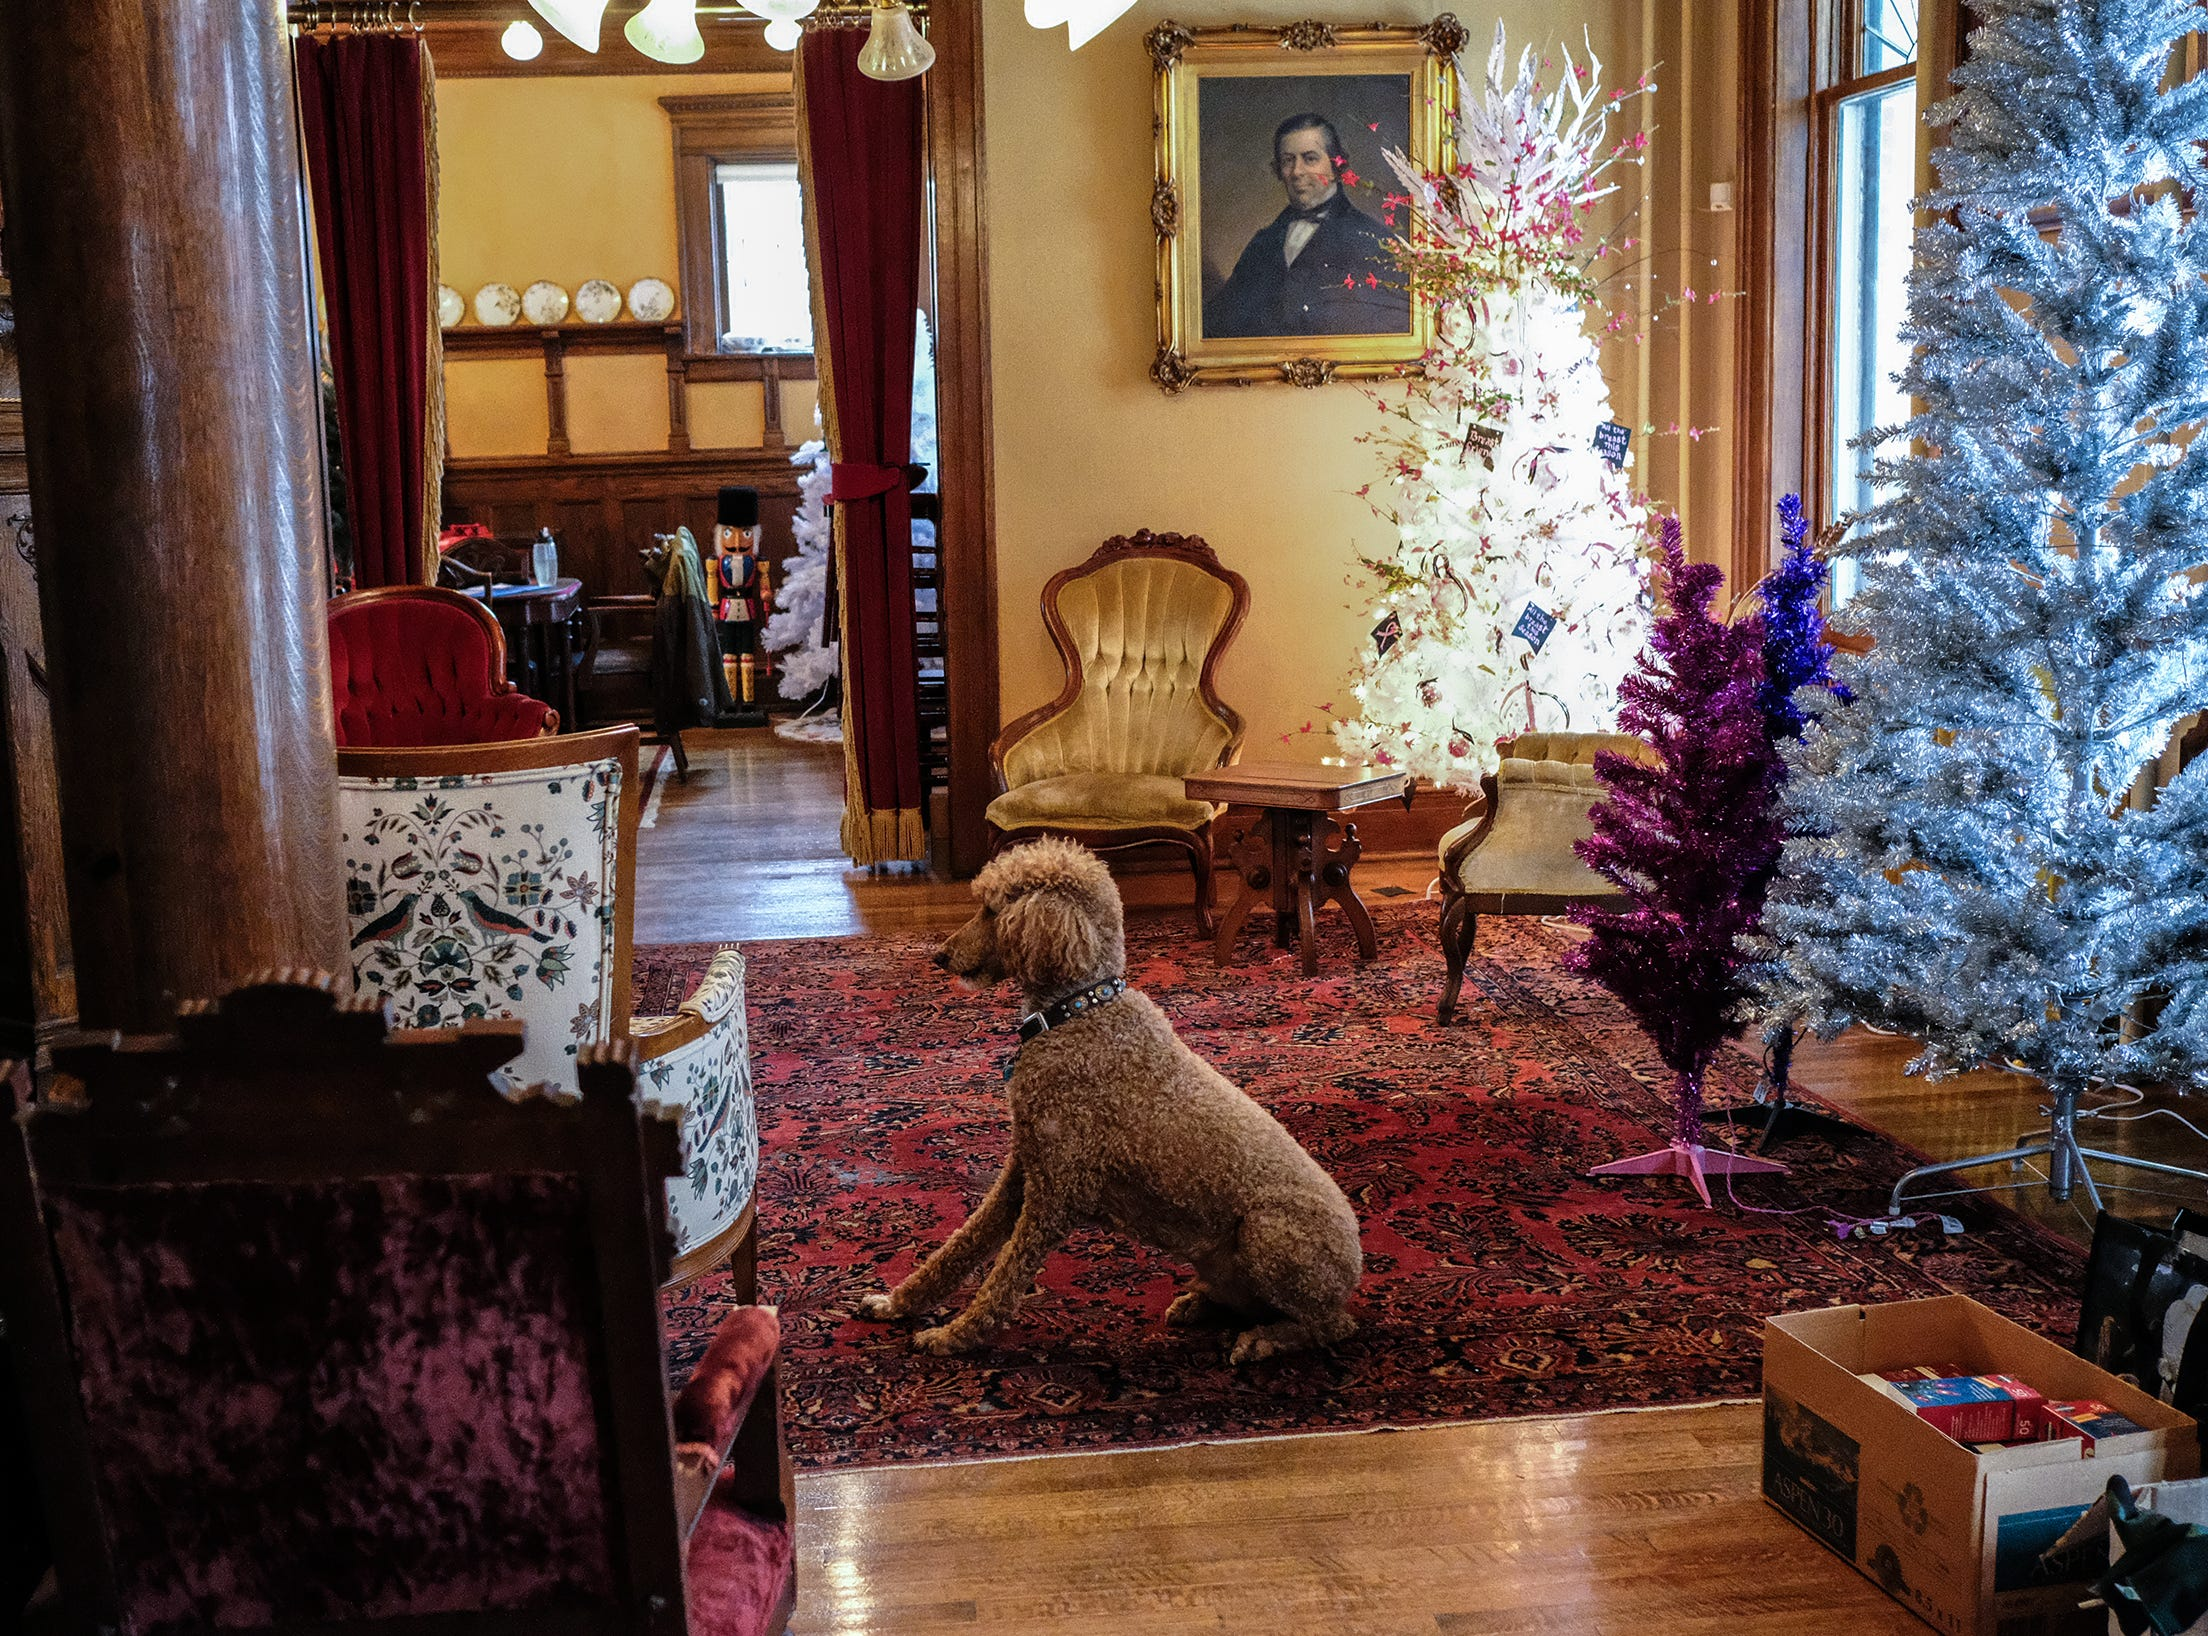 As people start to decorate trees for the annual A Festival of Trees at the Turner-Dodge House, Barron greets them as they come in Saturday, Dec. 1, 2018.